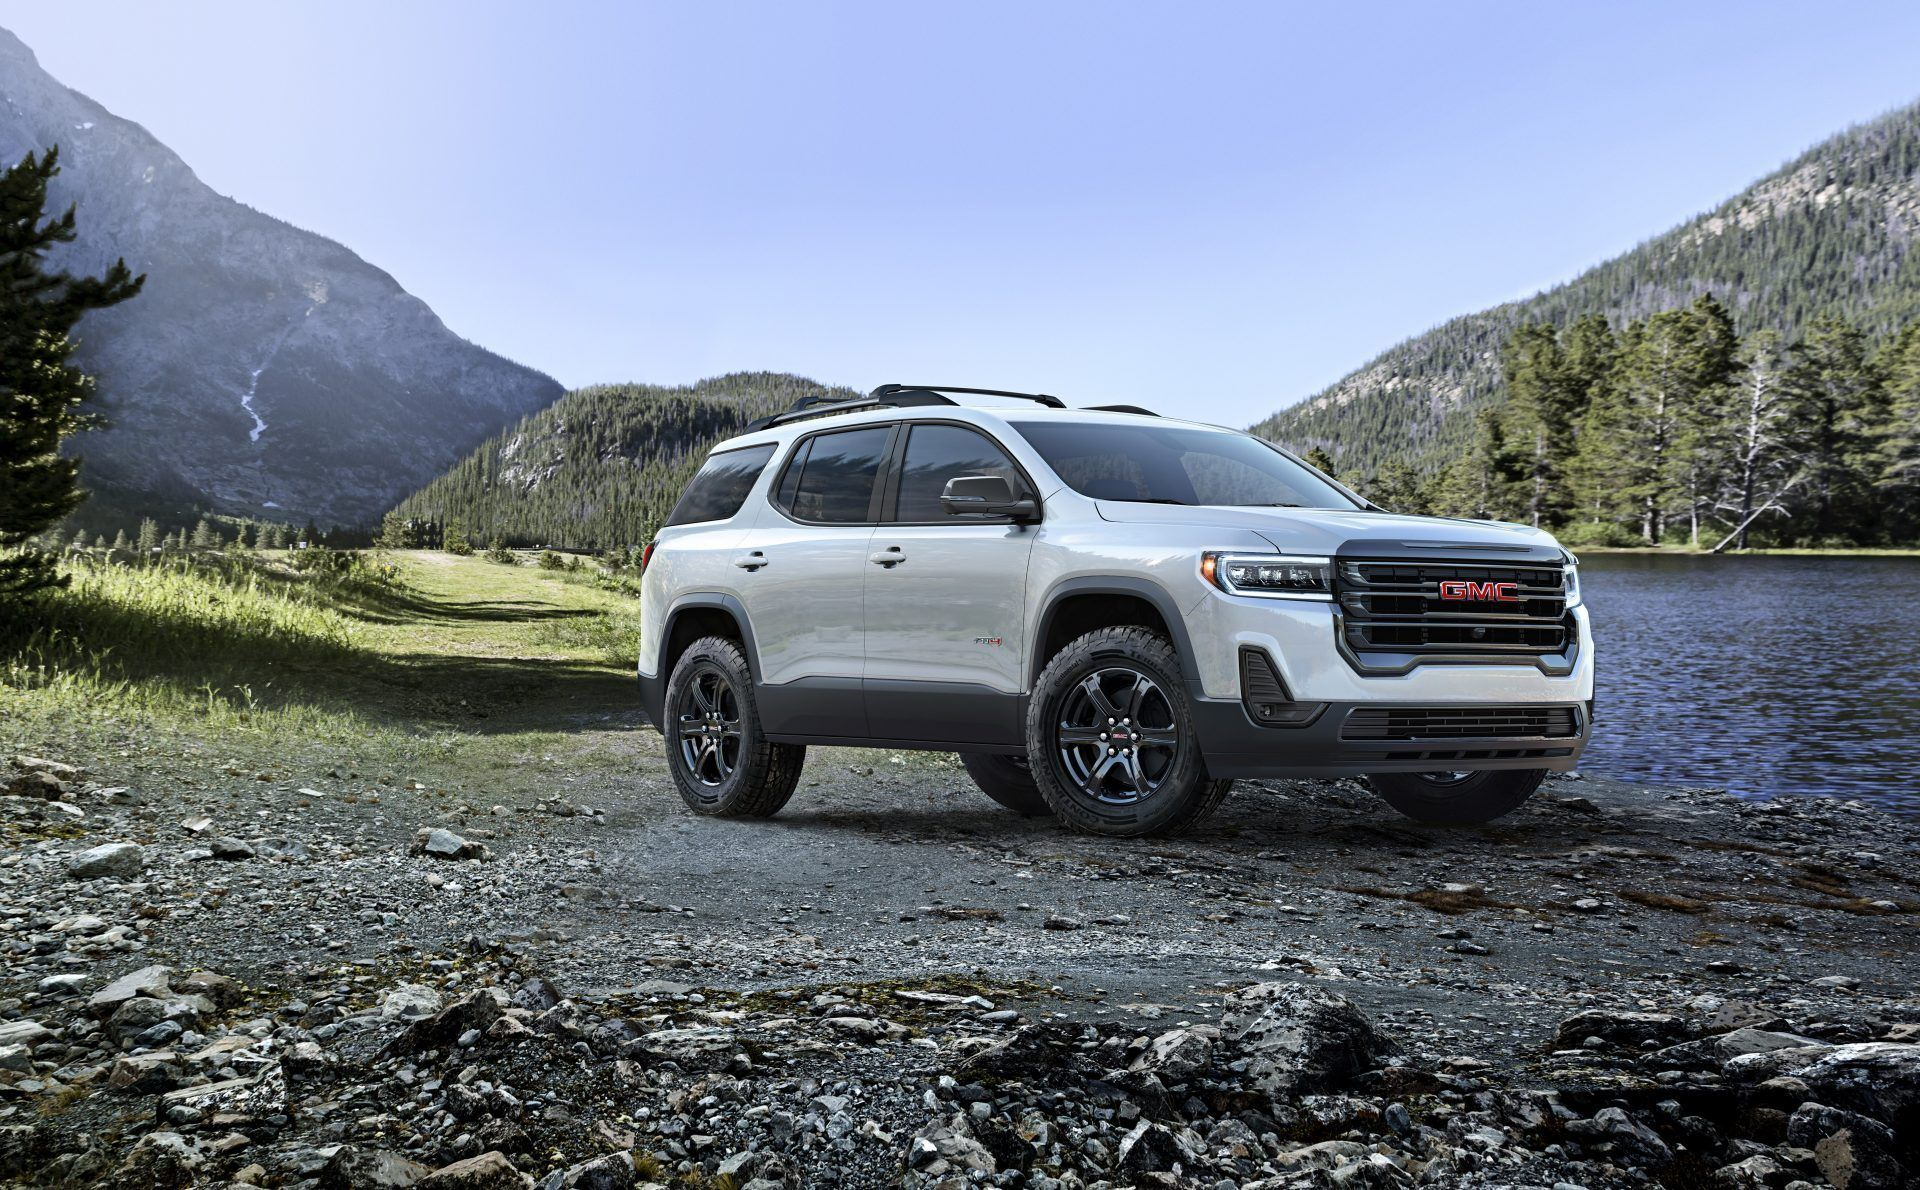 2020 Gmc Acadia Gets A Refresh Now With At4 Trim Package Gmc Acadia New Cars